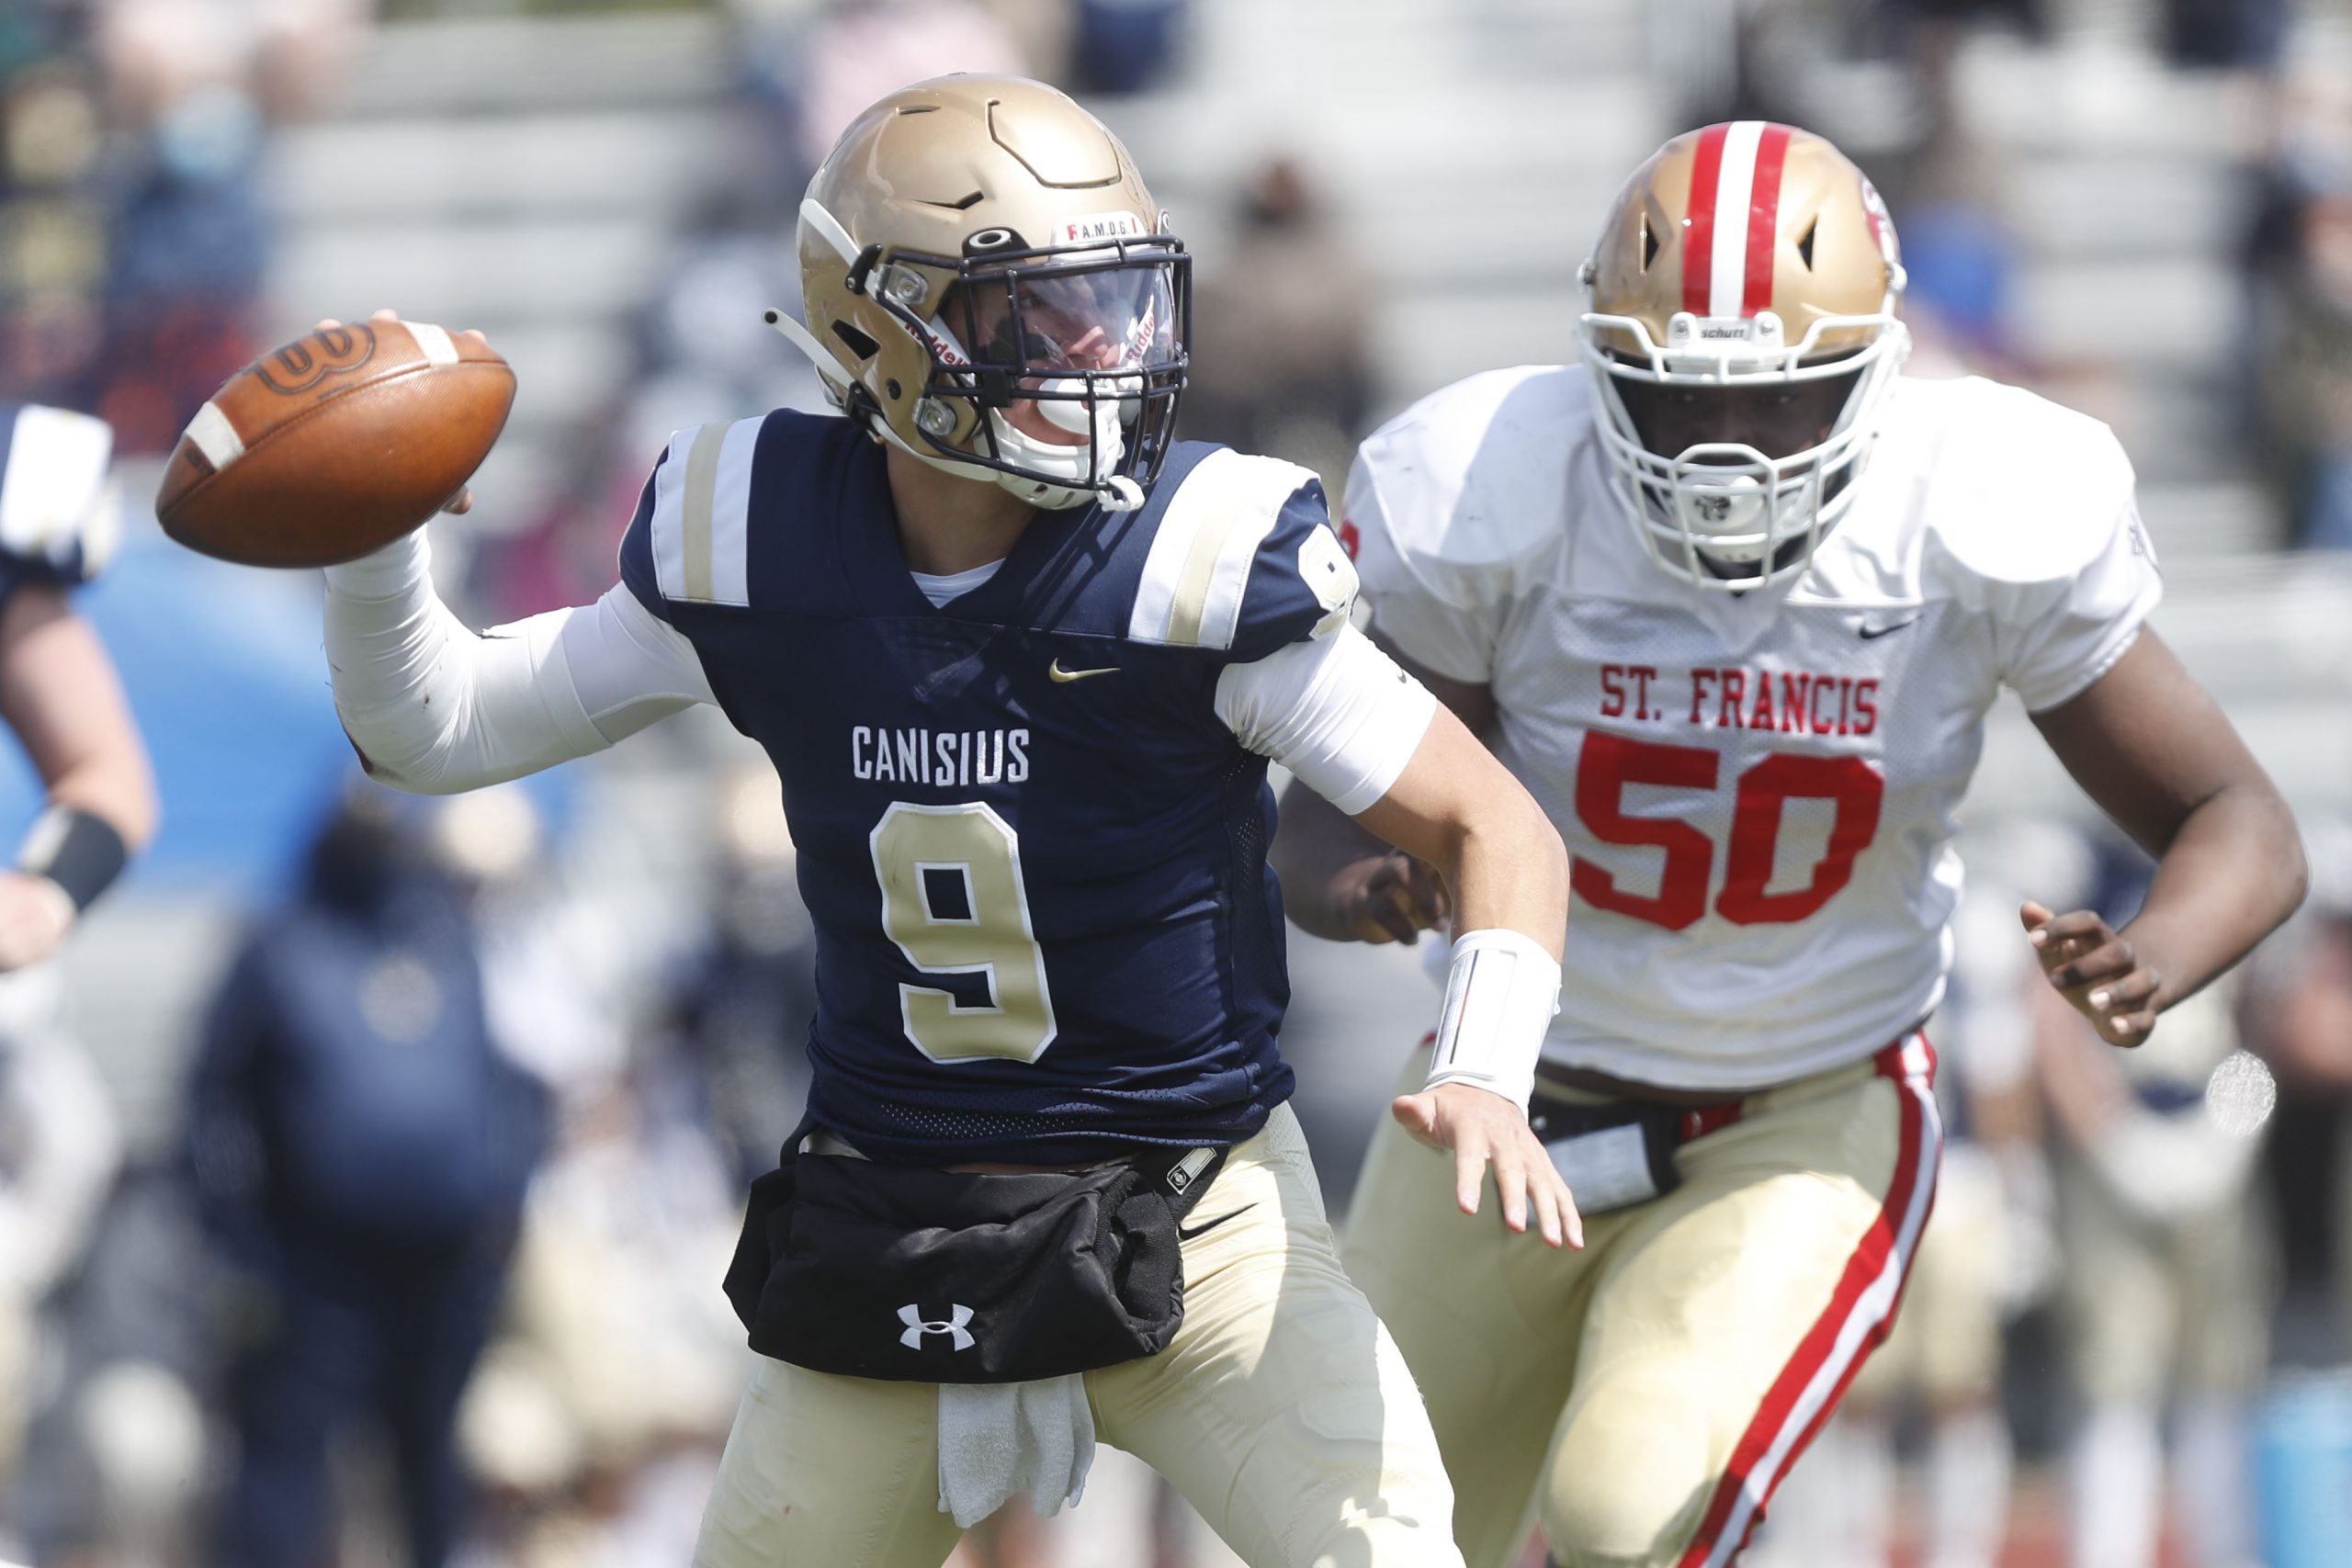 Canisius rides early lead to Monsignor Martin title